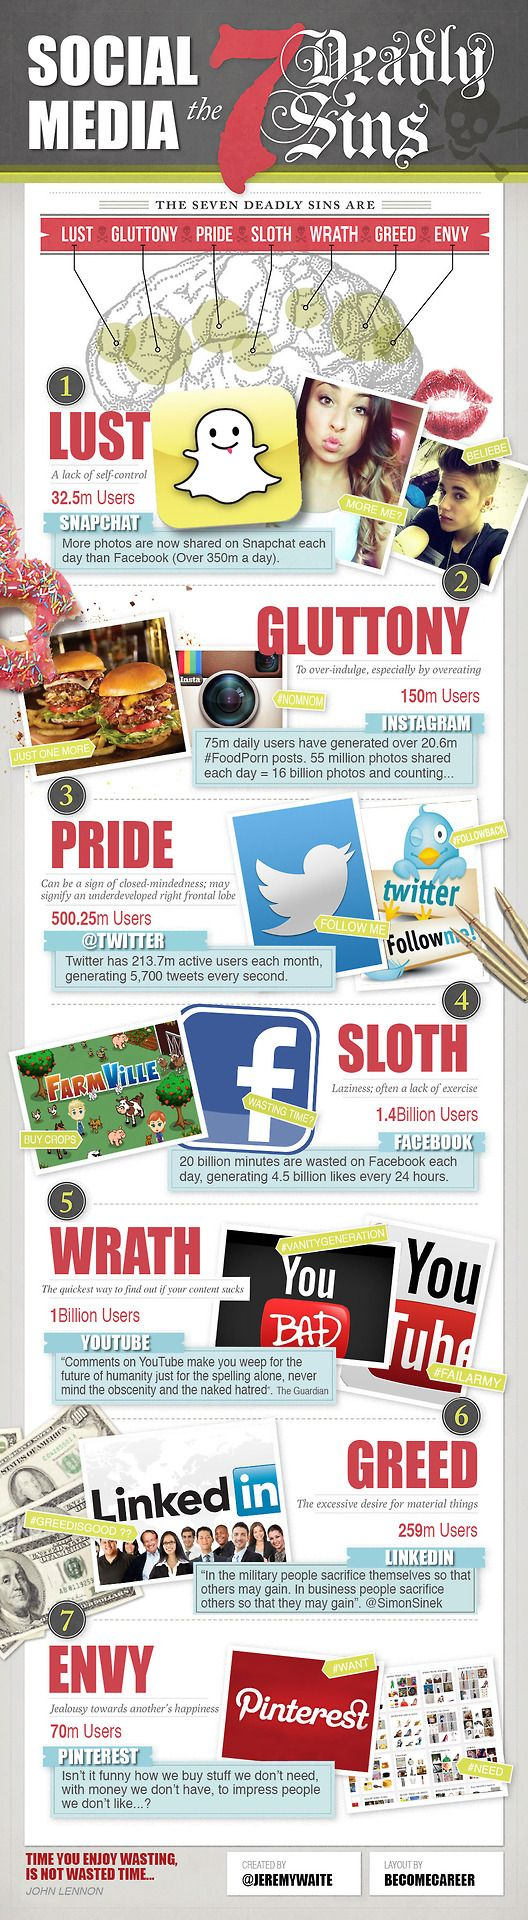 The Seven Deadly Sins of Social Media [INFOGRAPHIC]